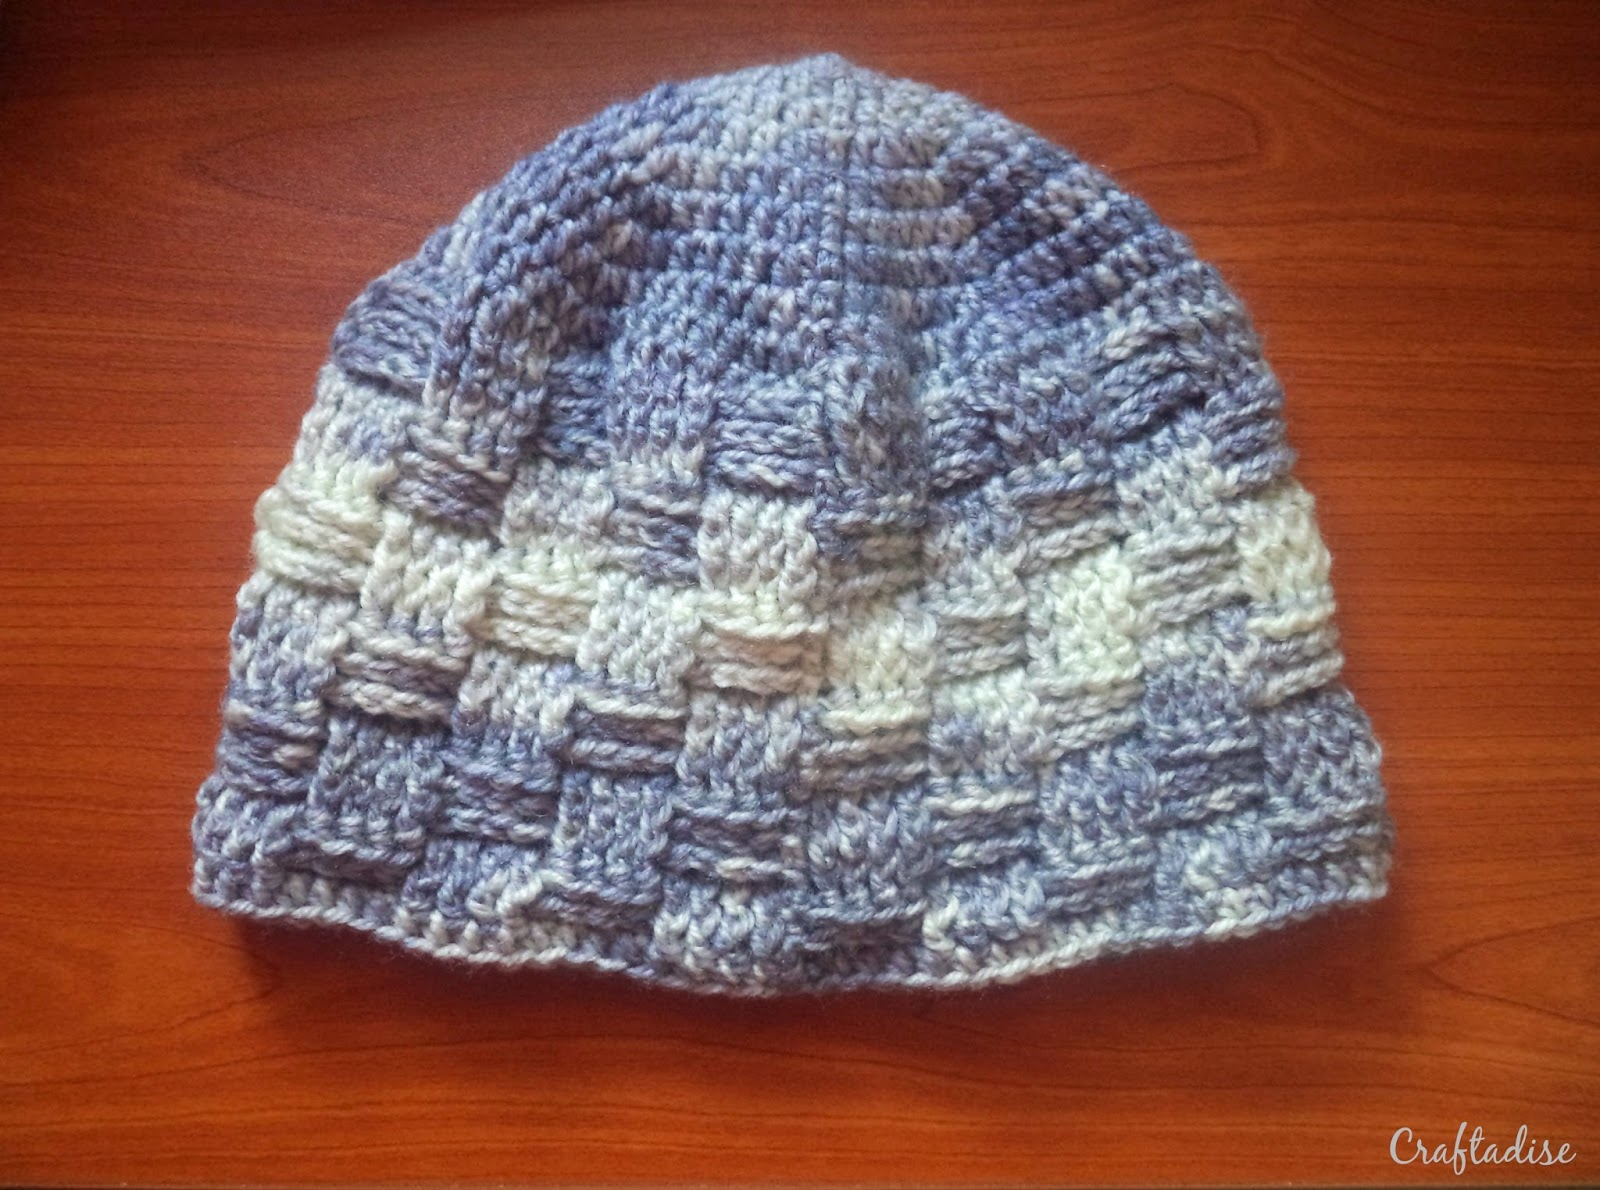 Free Crochet Pattern: Basketweave Beanie